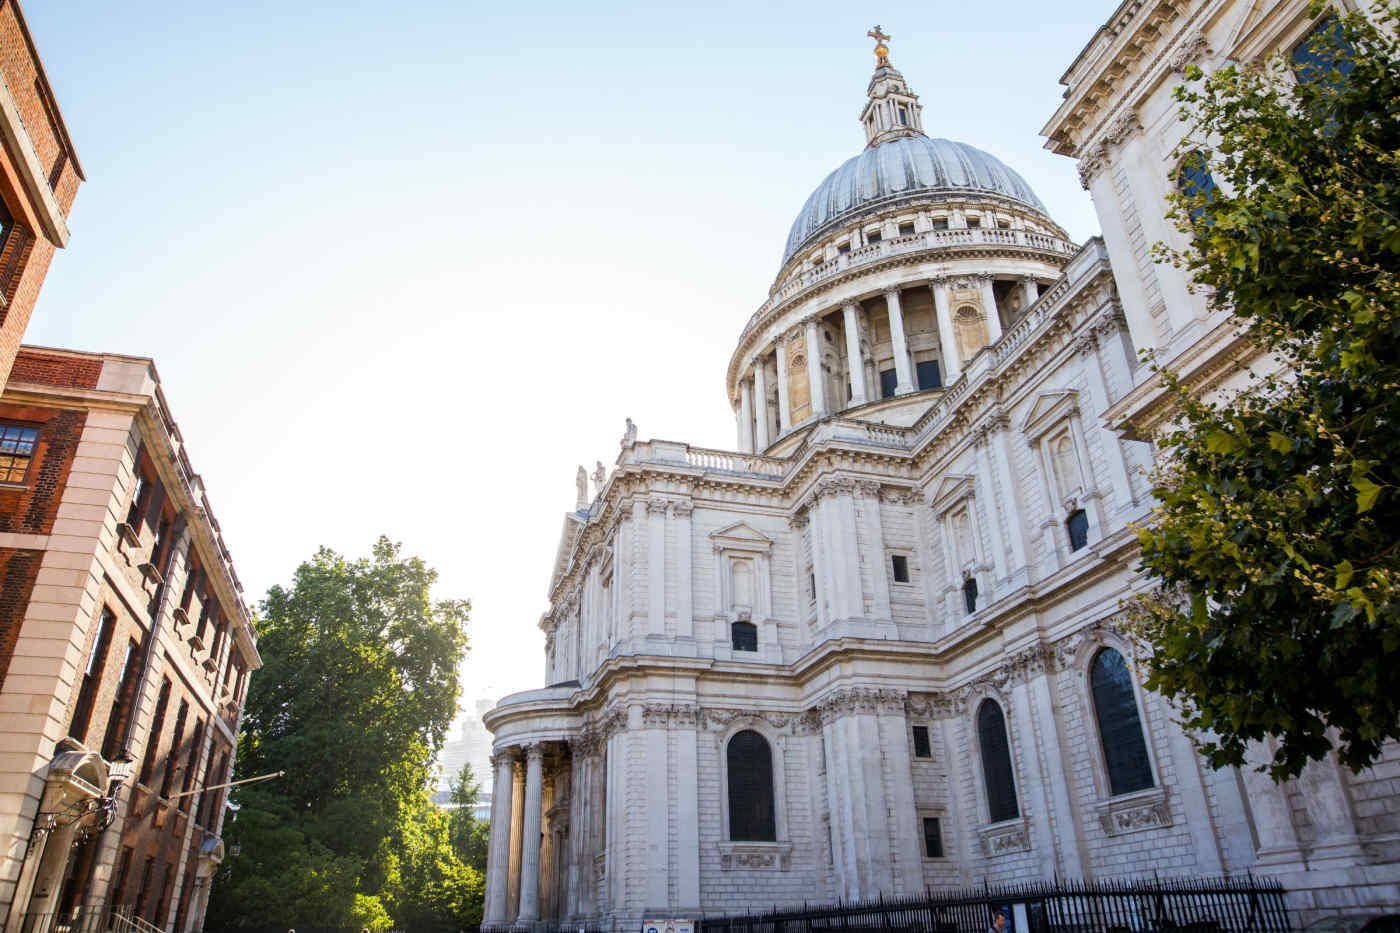 St. Paul's Cathedral • London, England